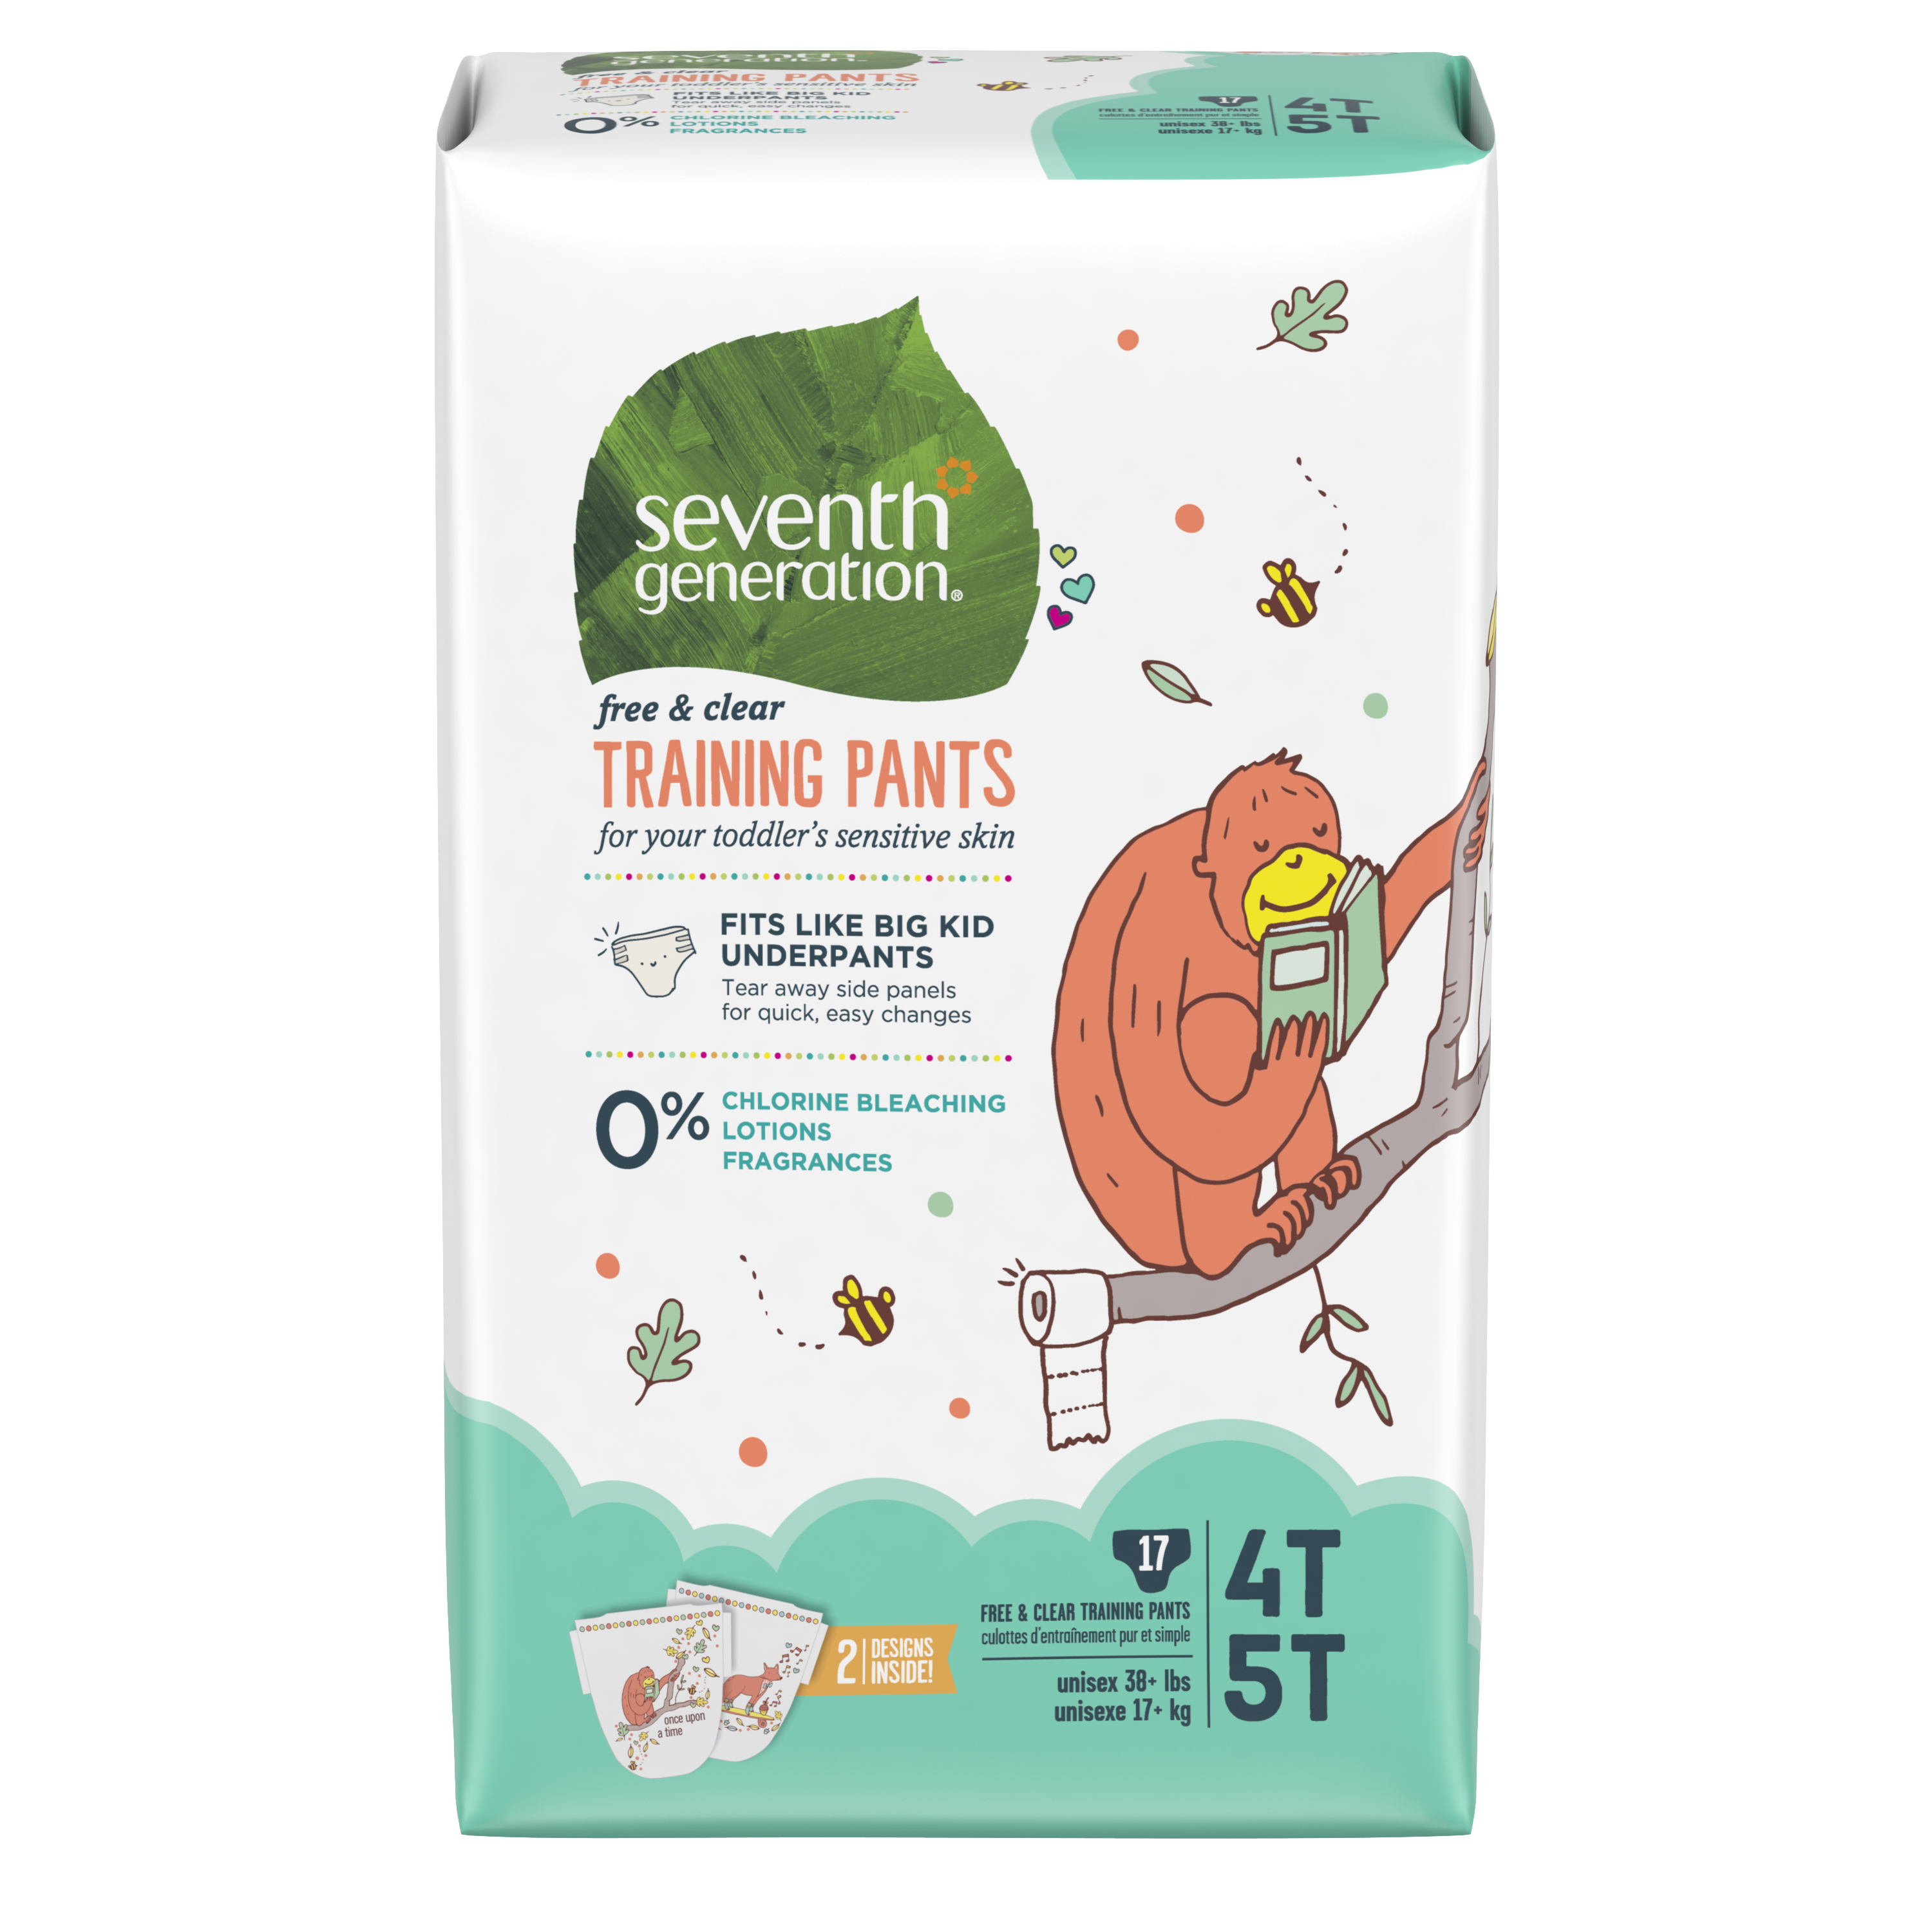 Seventh Generation Training Pants for Toddlers 4T-5T, 1 pack of 17 (17 ct)